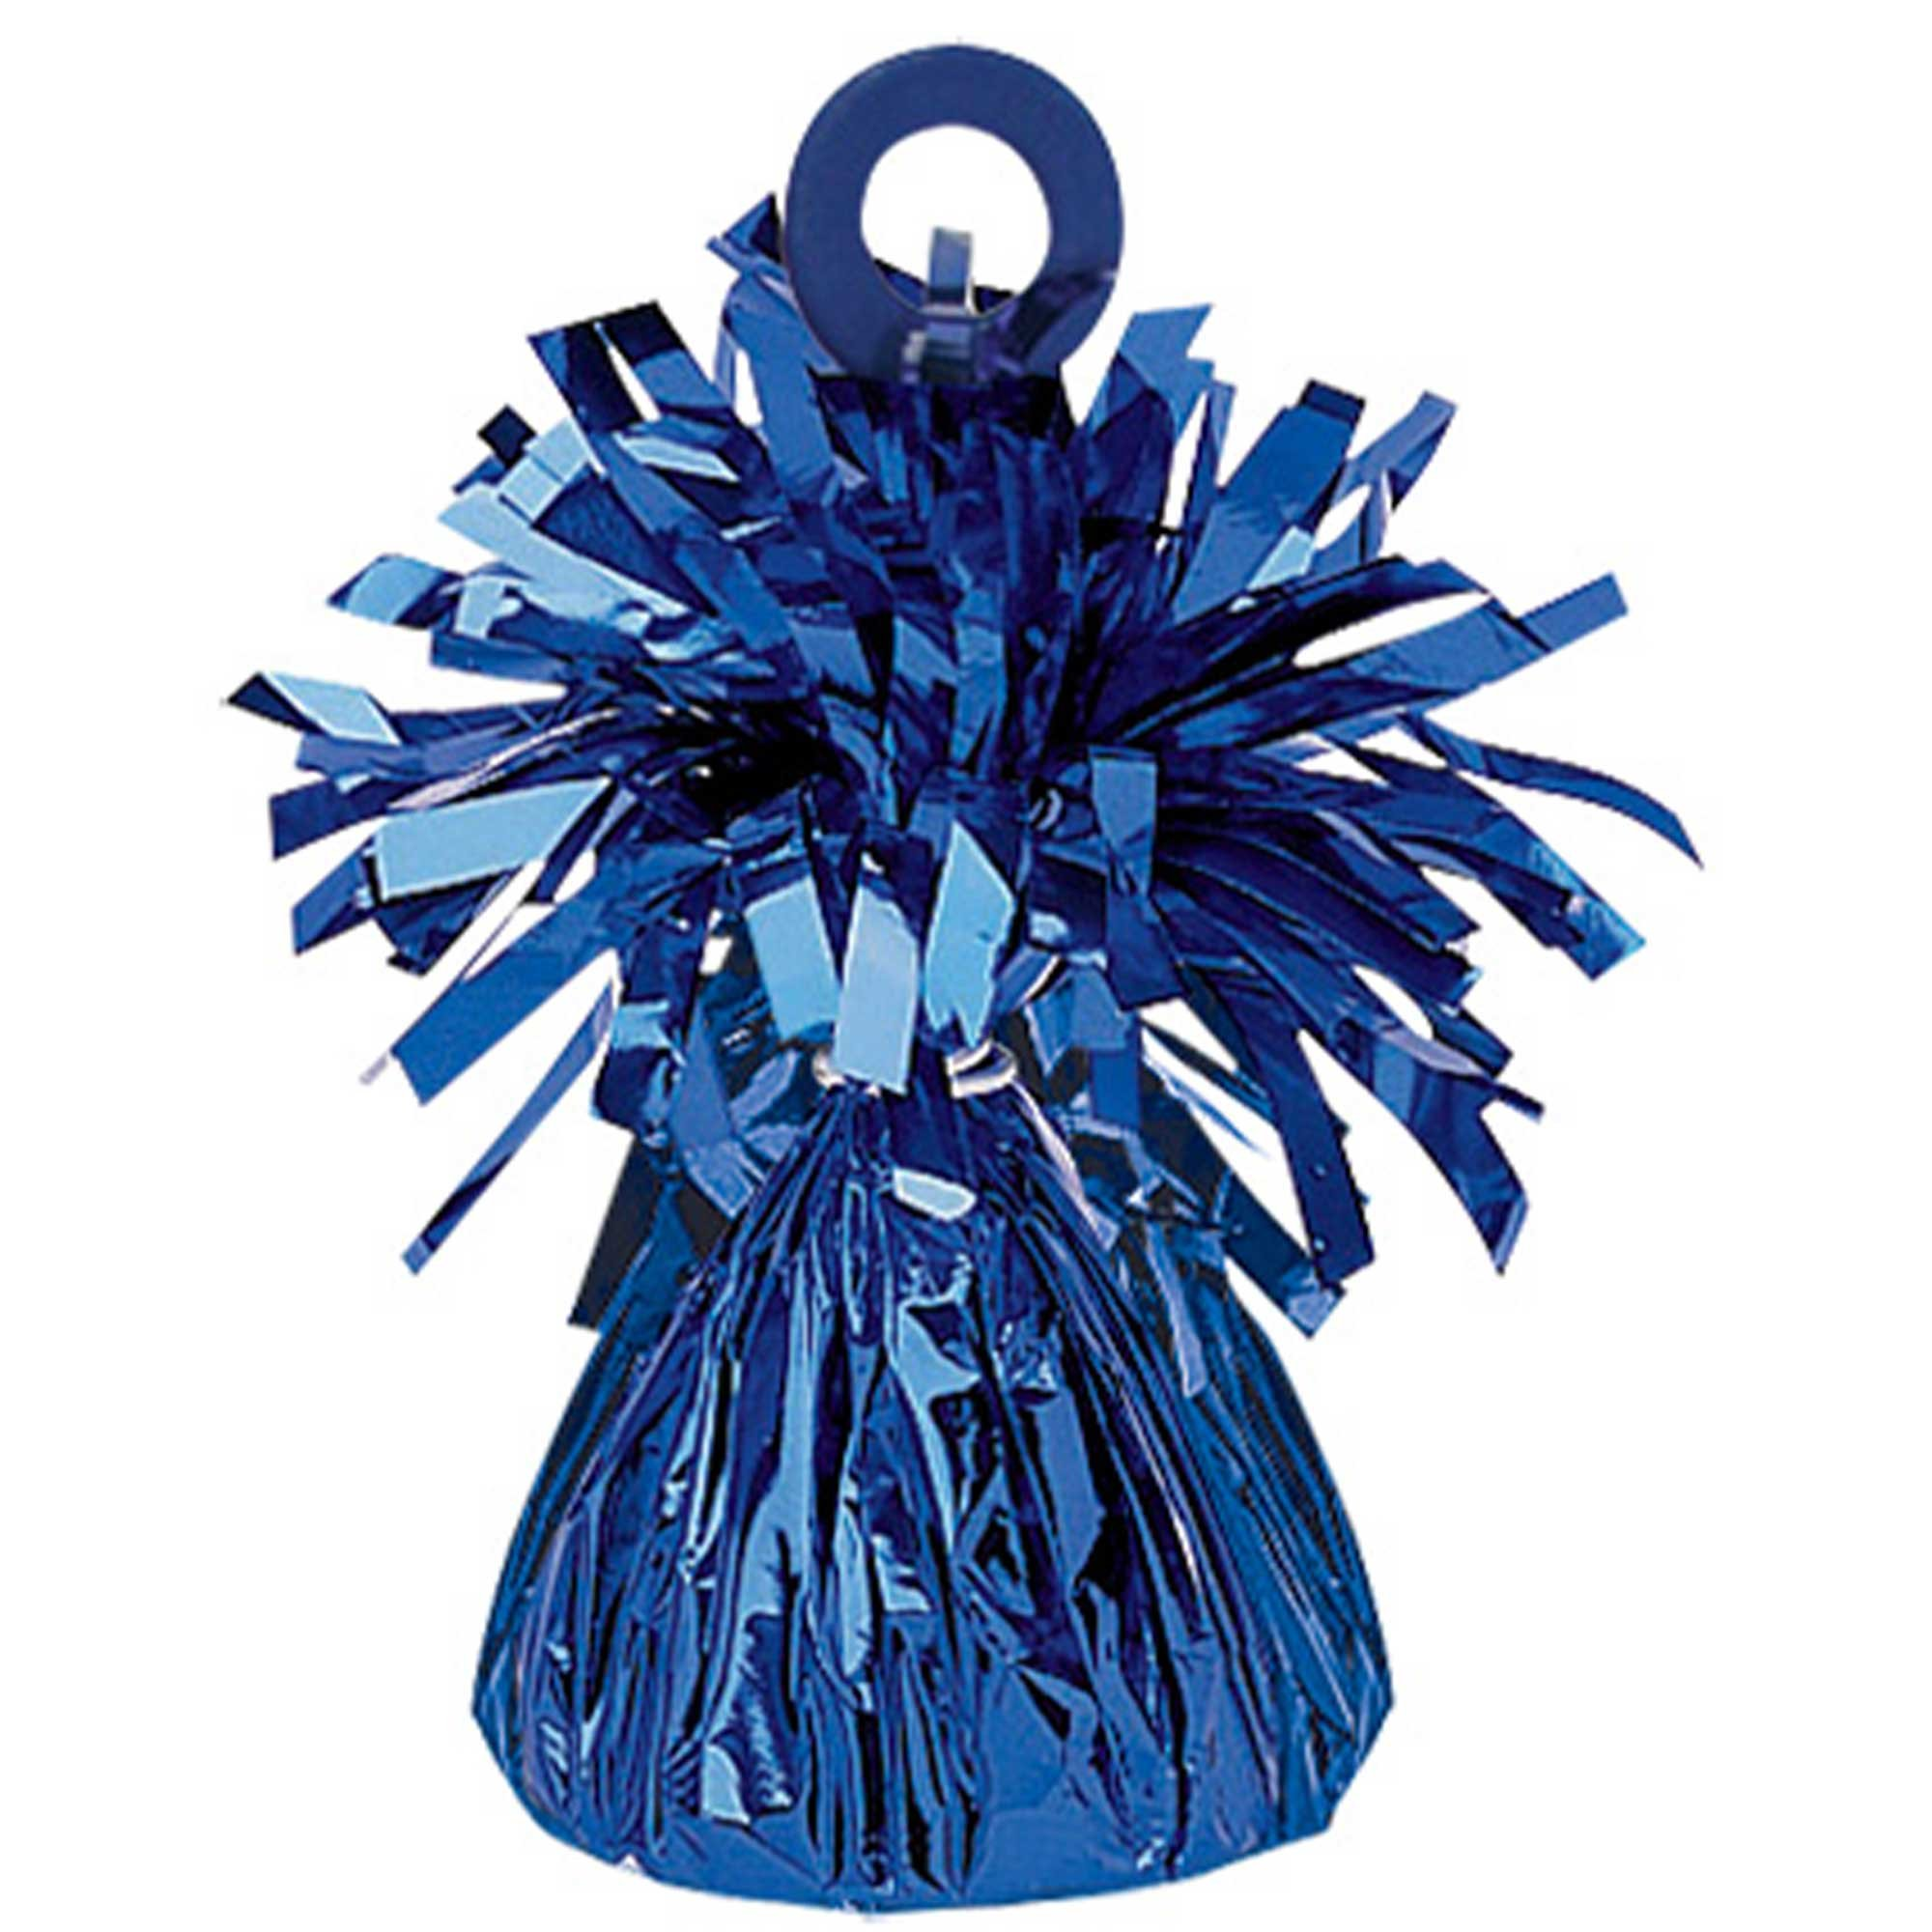 Small Foil Balloon Weight - Blue